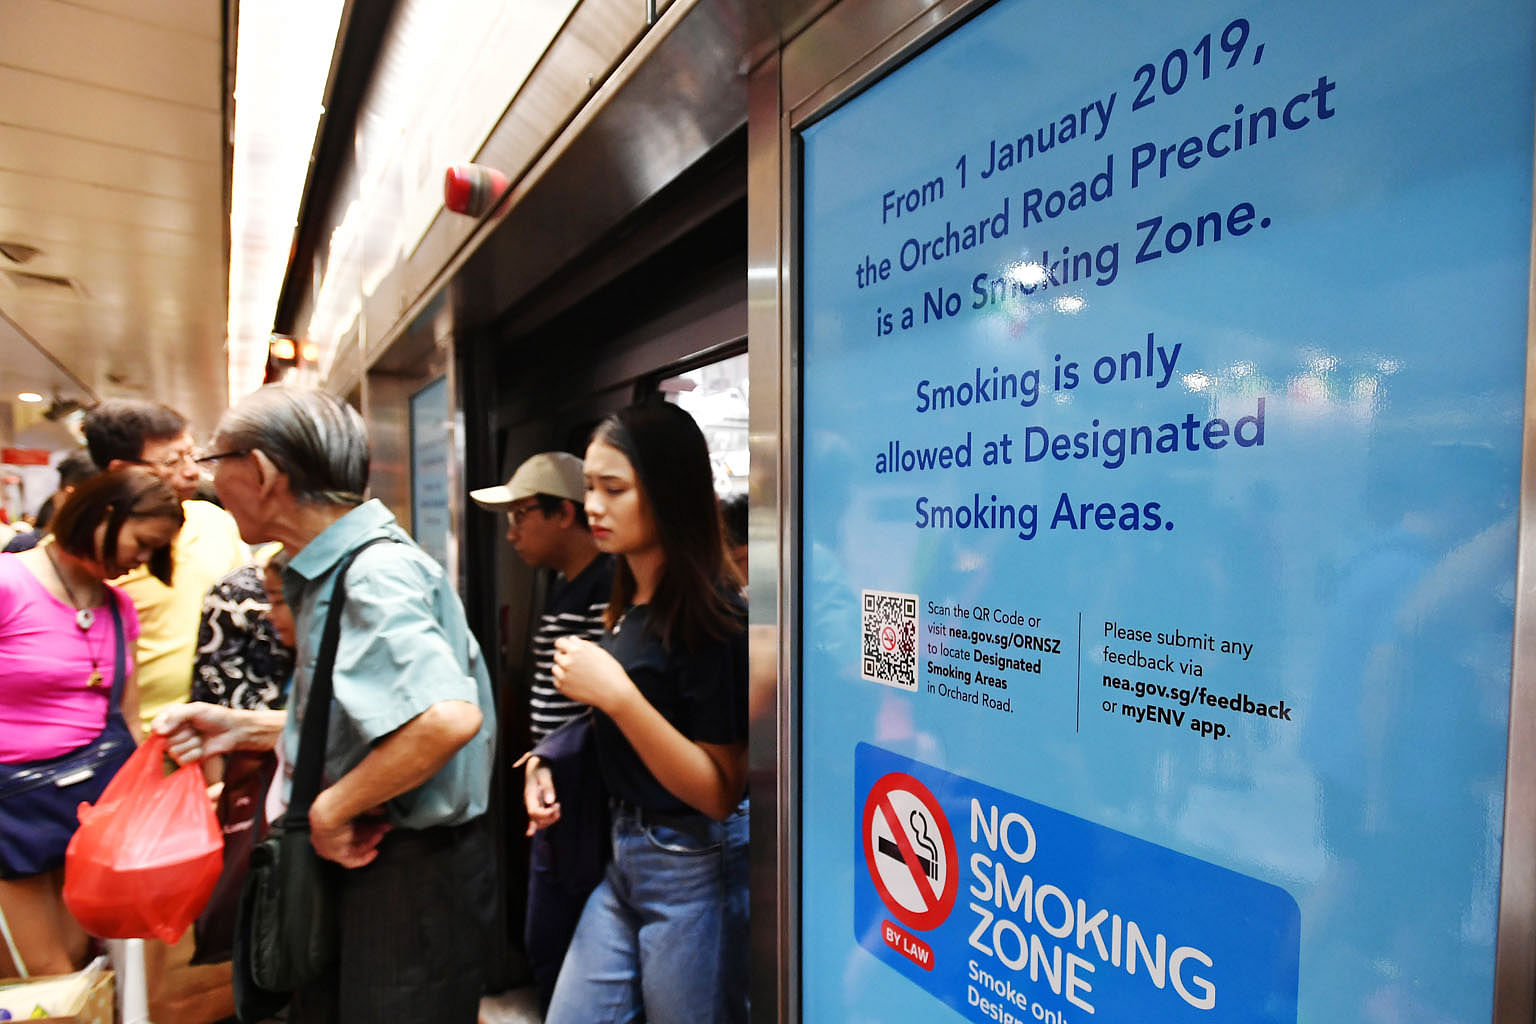 This year's Orchard Road smoking ban and increase of the minimum legal age for smoking from 18 to 19, and progressively to 21 by 2021, are among the Government's efforts to curb smoking.